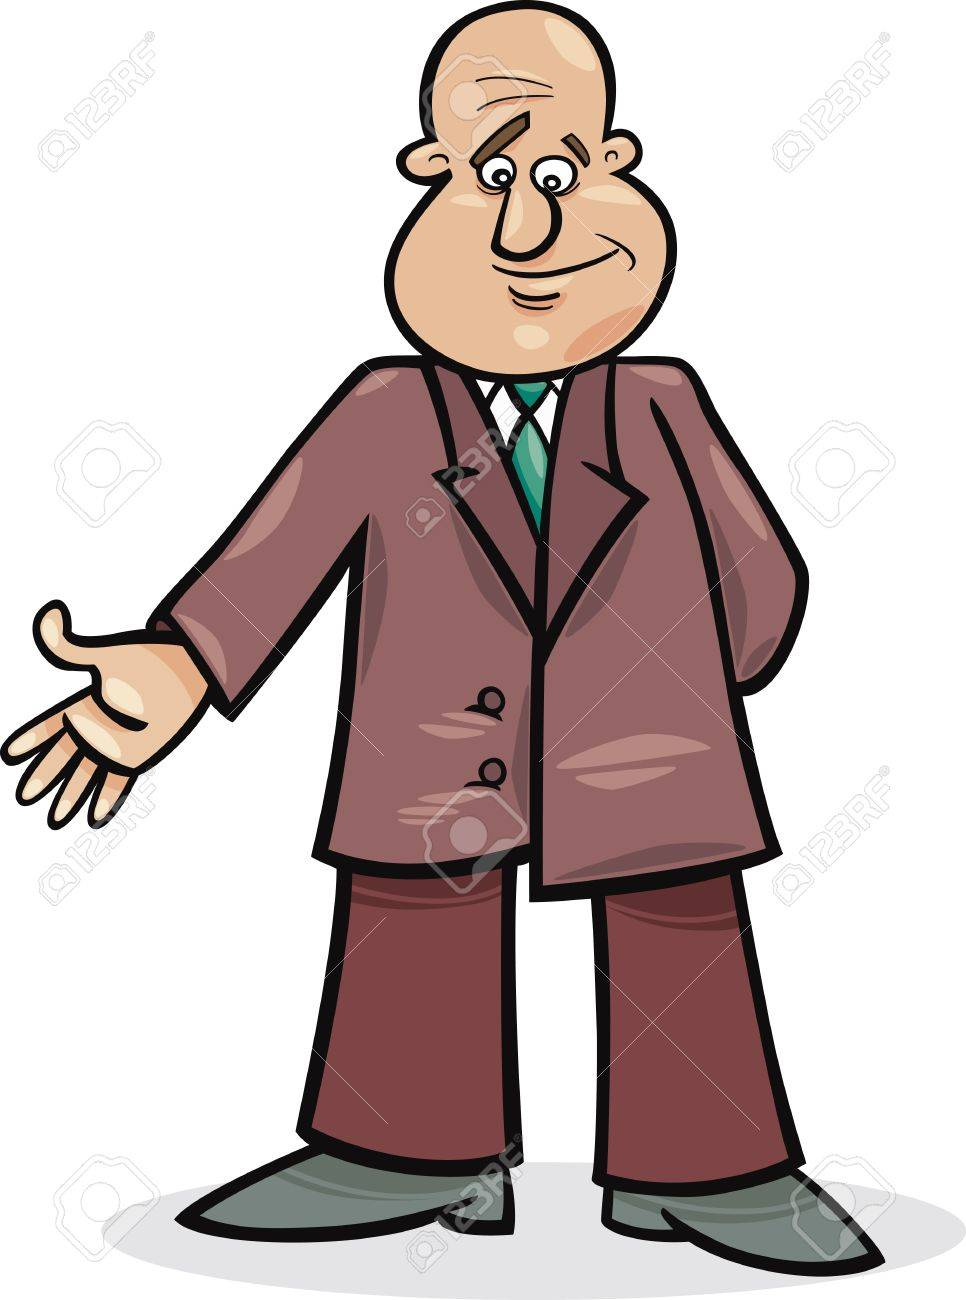 cartoon illustration of funny man in suit Stock Vector - 11933976